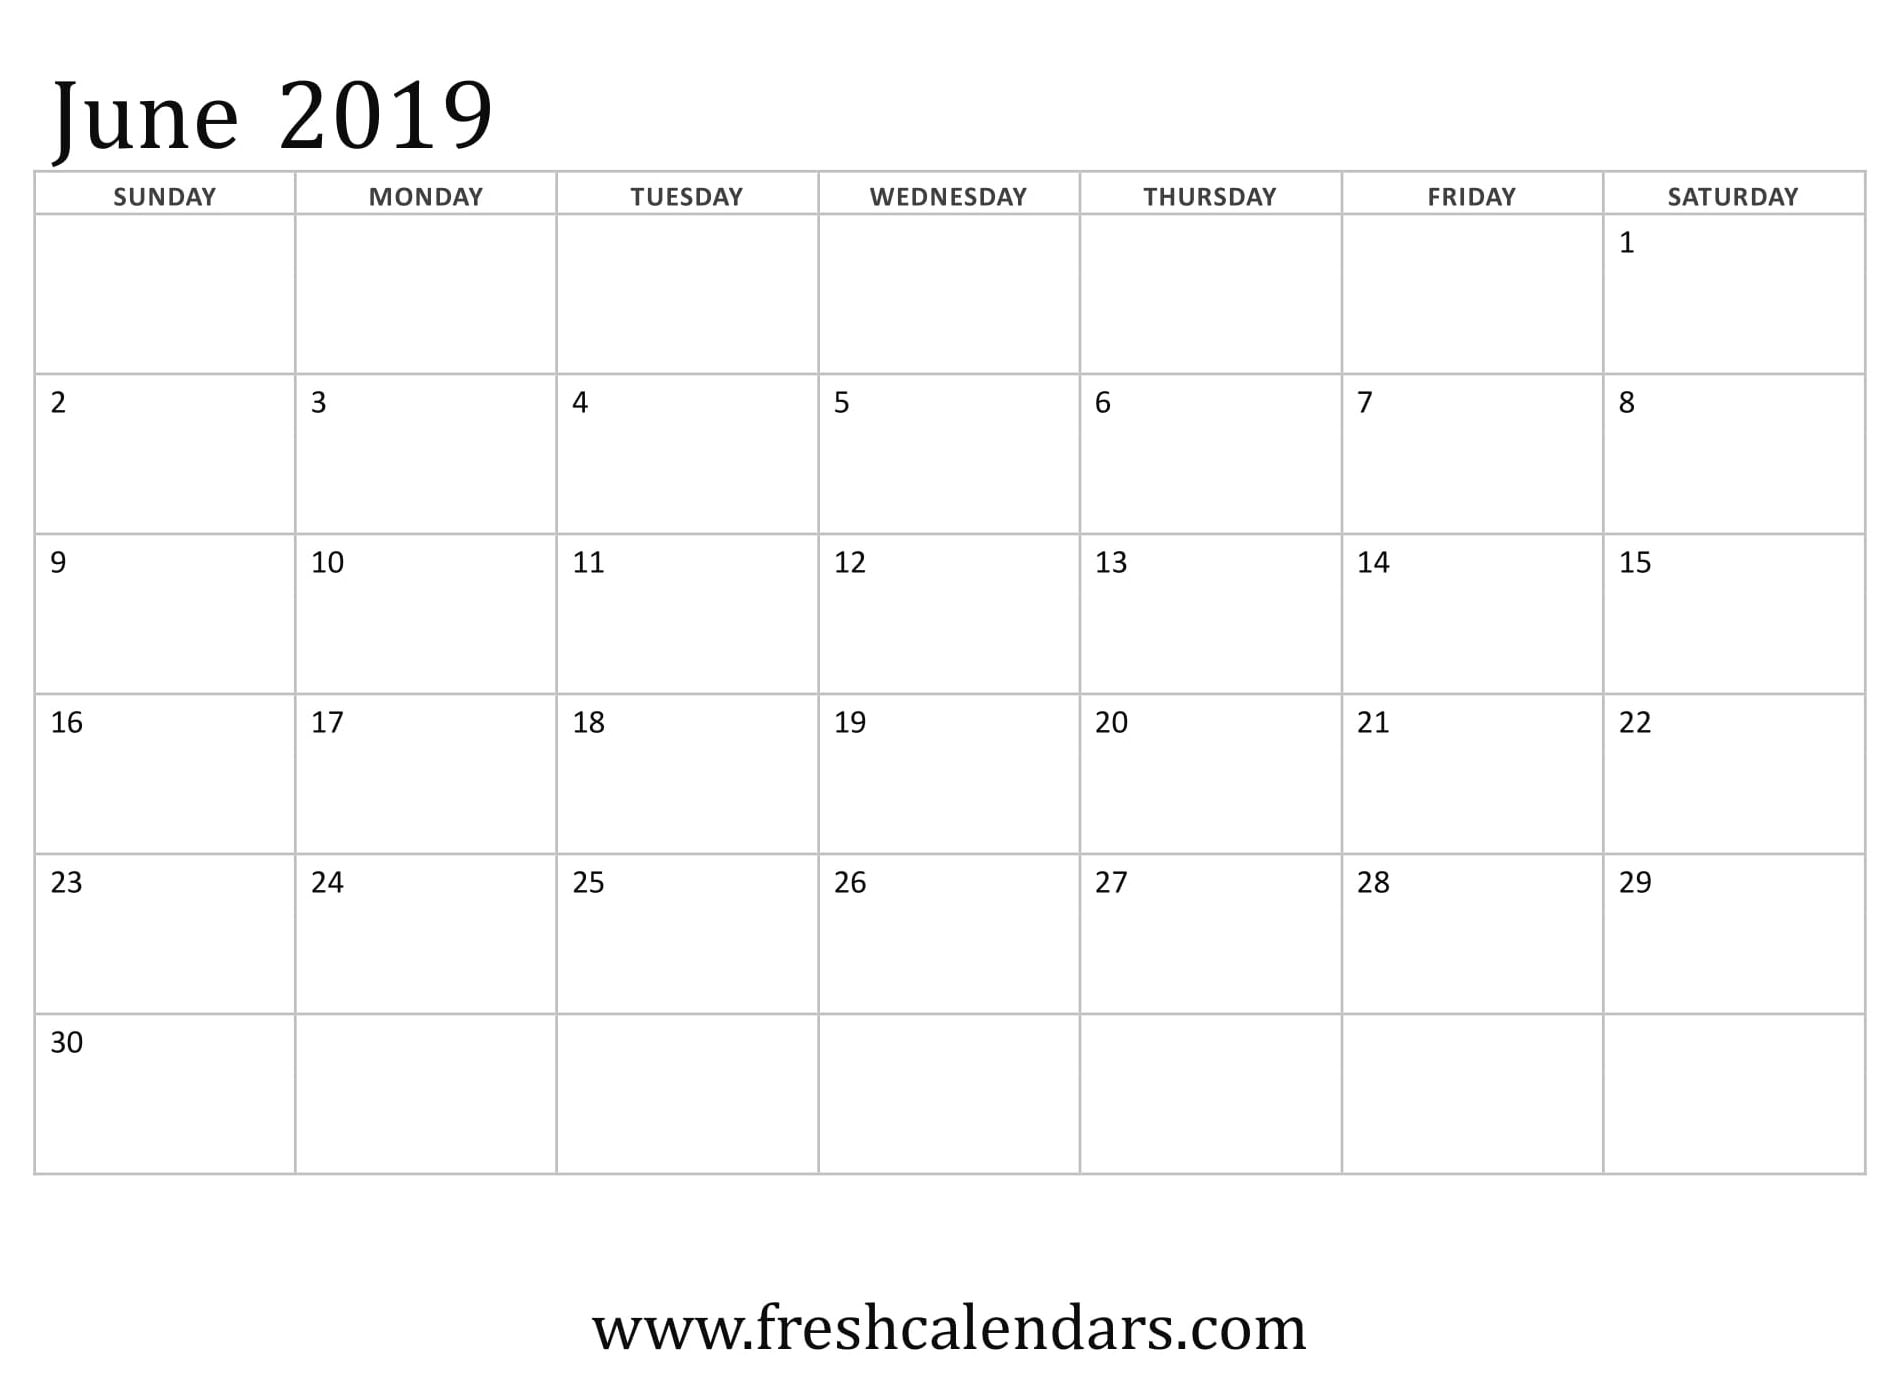 June 2019 Calendar Basic Template